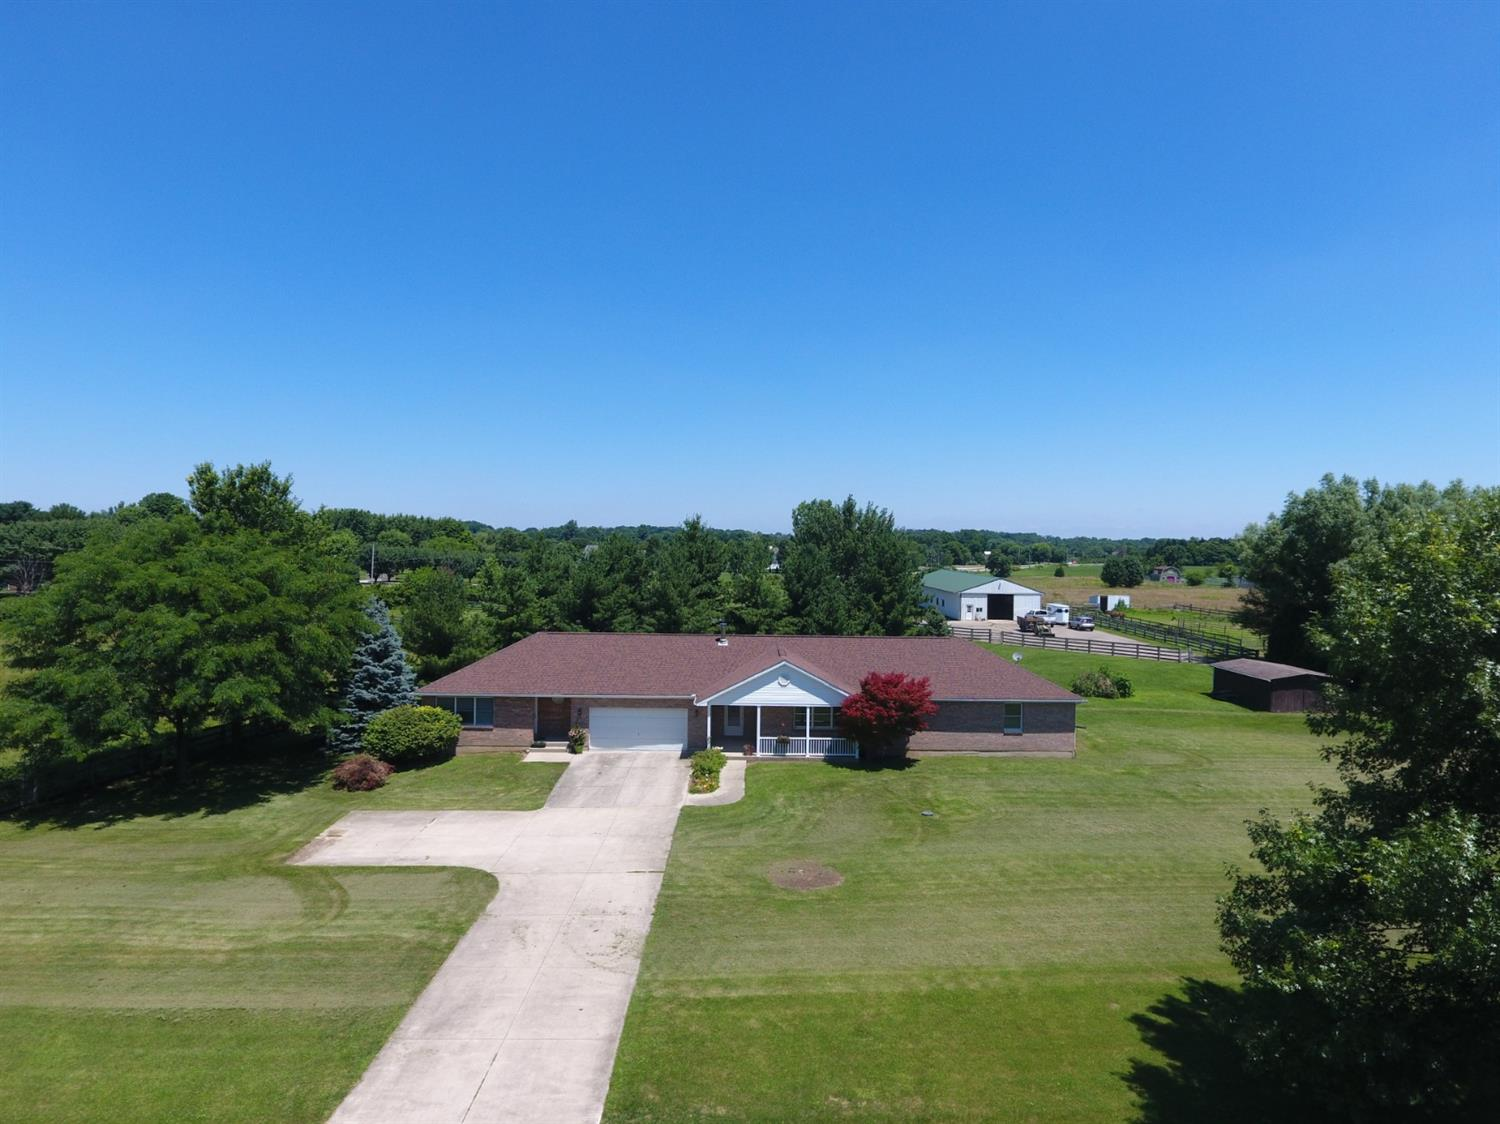 Property for sale at 2882 Shoemaker Road, Clearcreek Twp.,  Ohio 45036